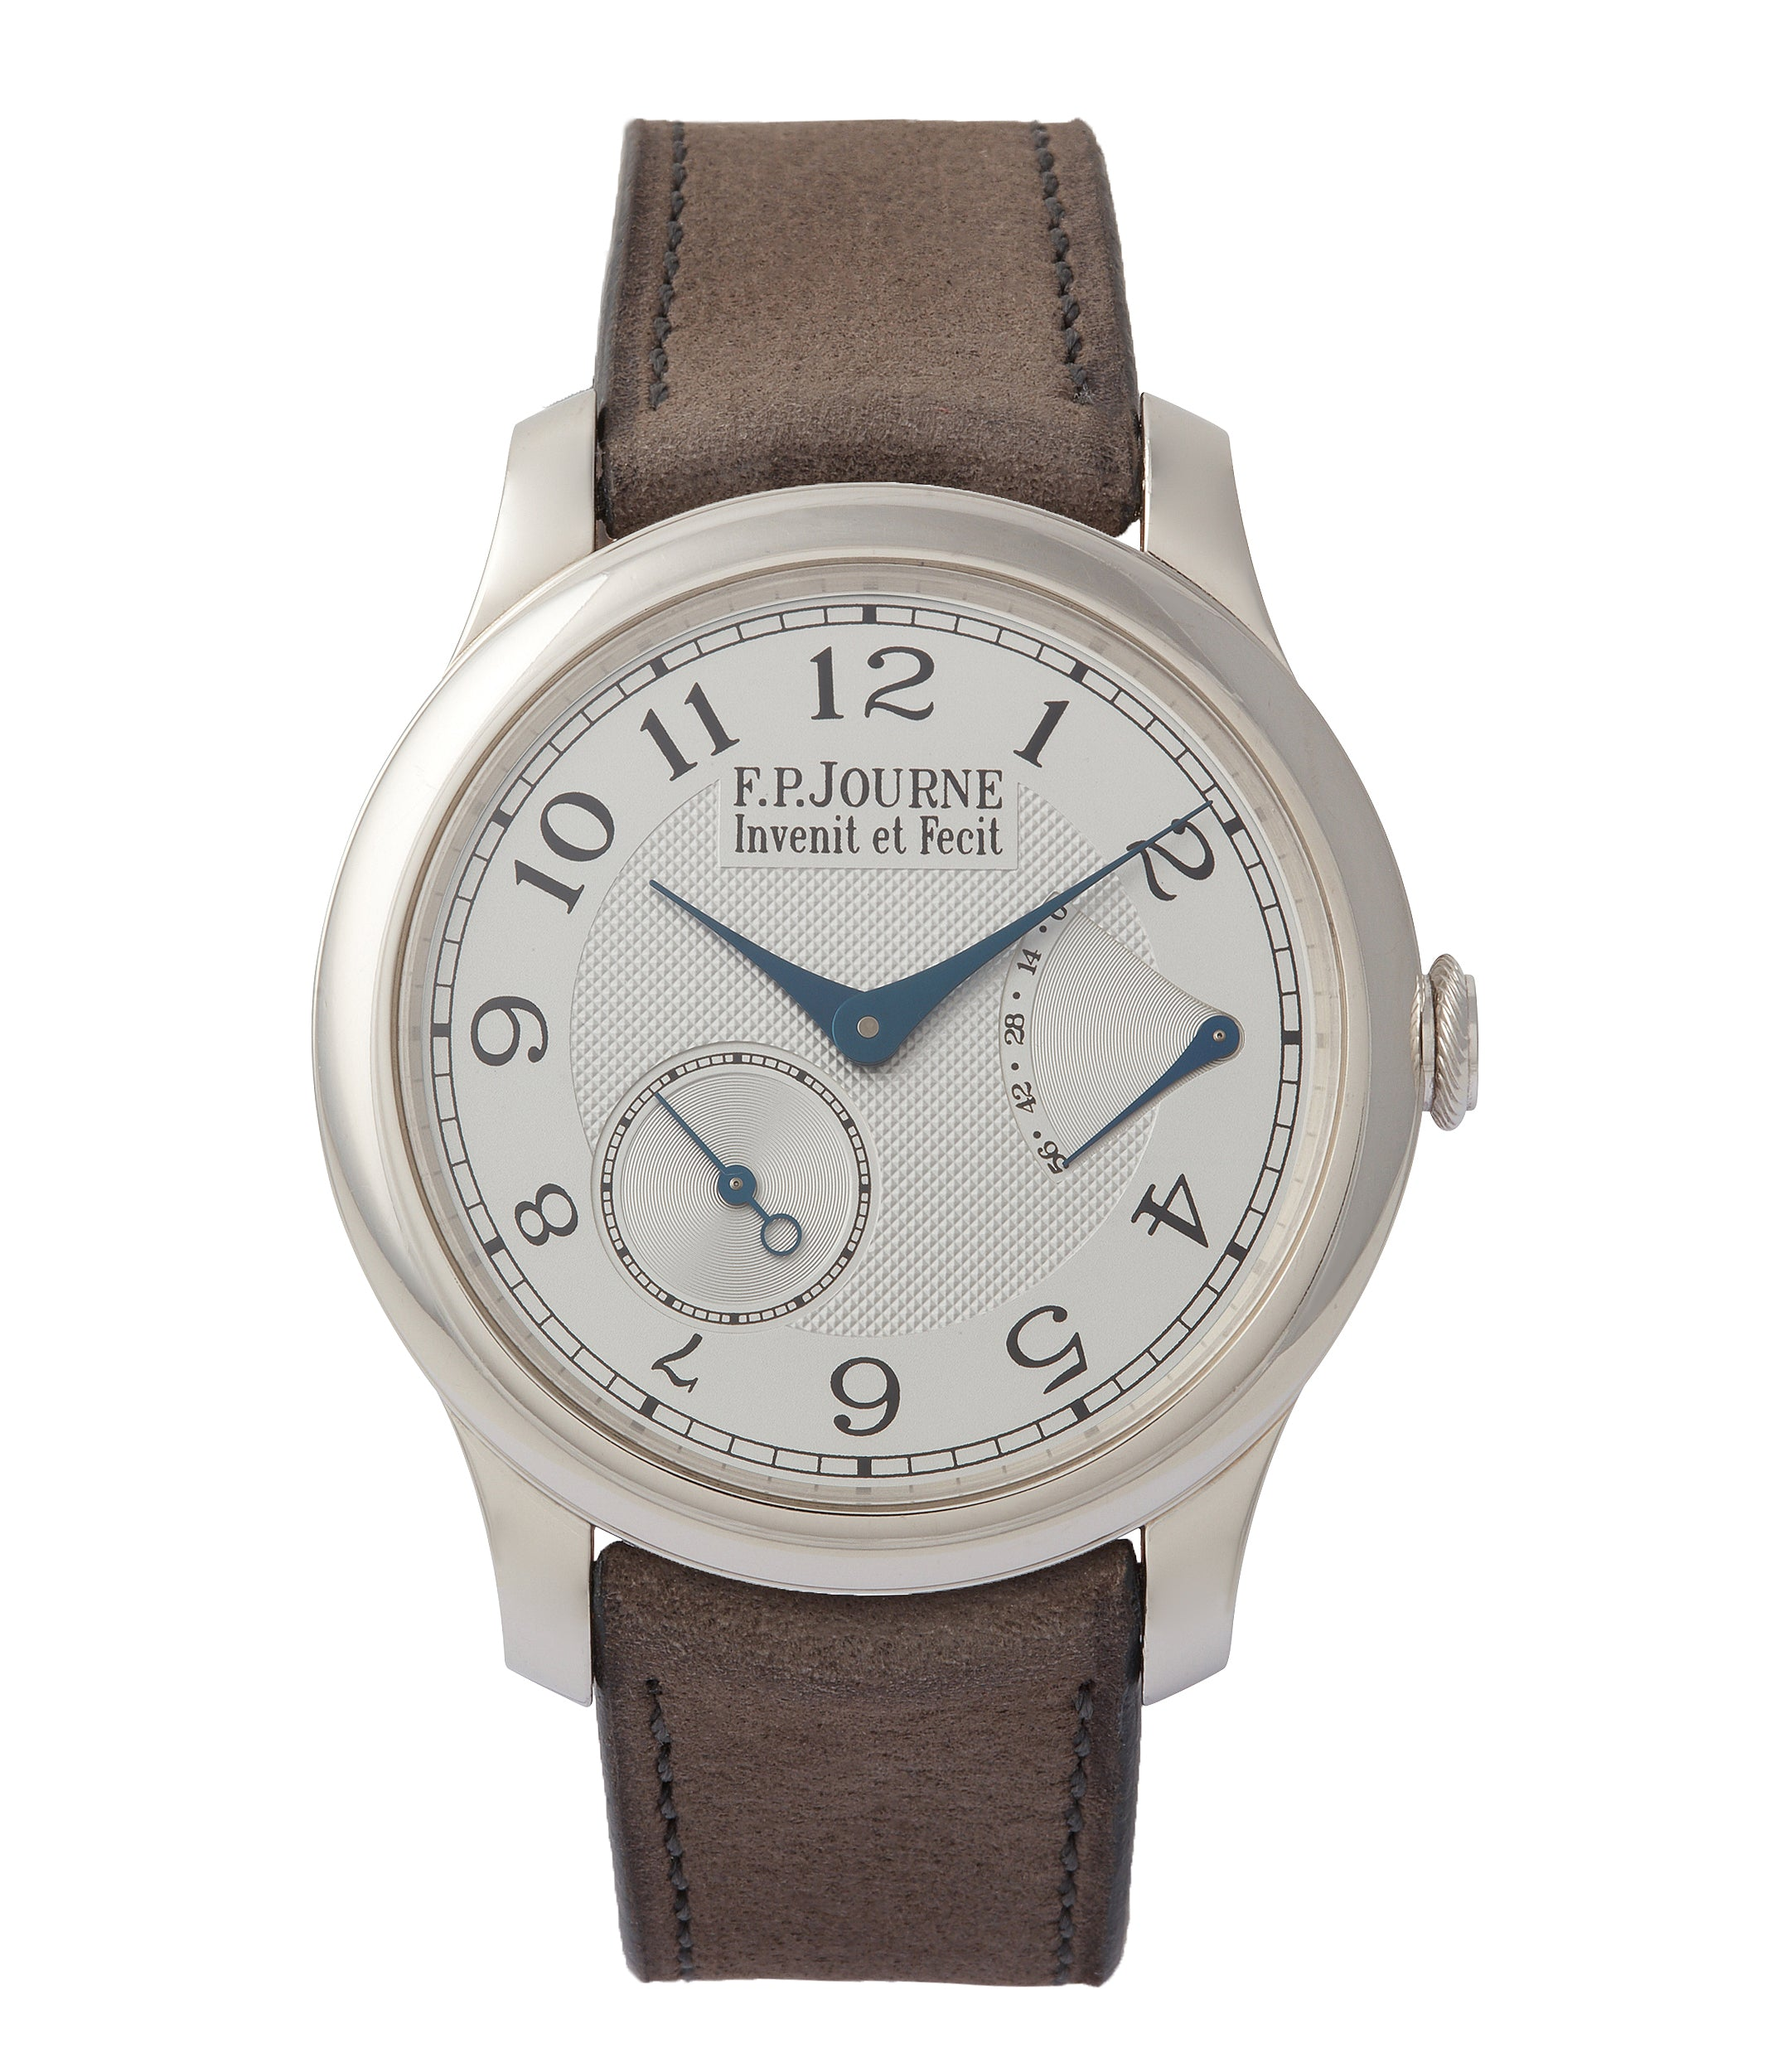 buy F. P. Journe Chronometre Souverain platinum 40mm Cal. 1304 manual-winding silver dial time-only dress watch for sale online at A Collected Man London UK specialist independent watchmakers